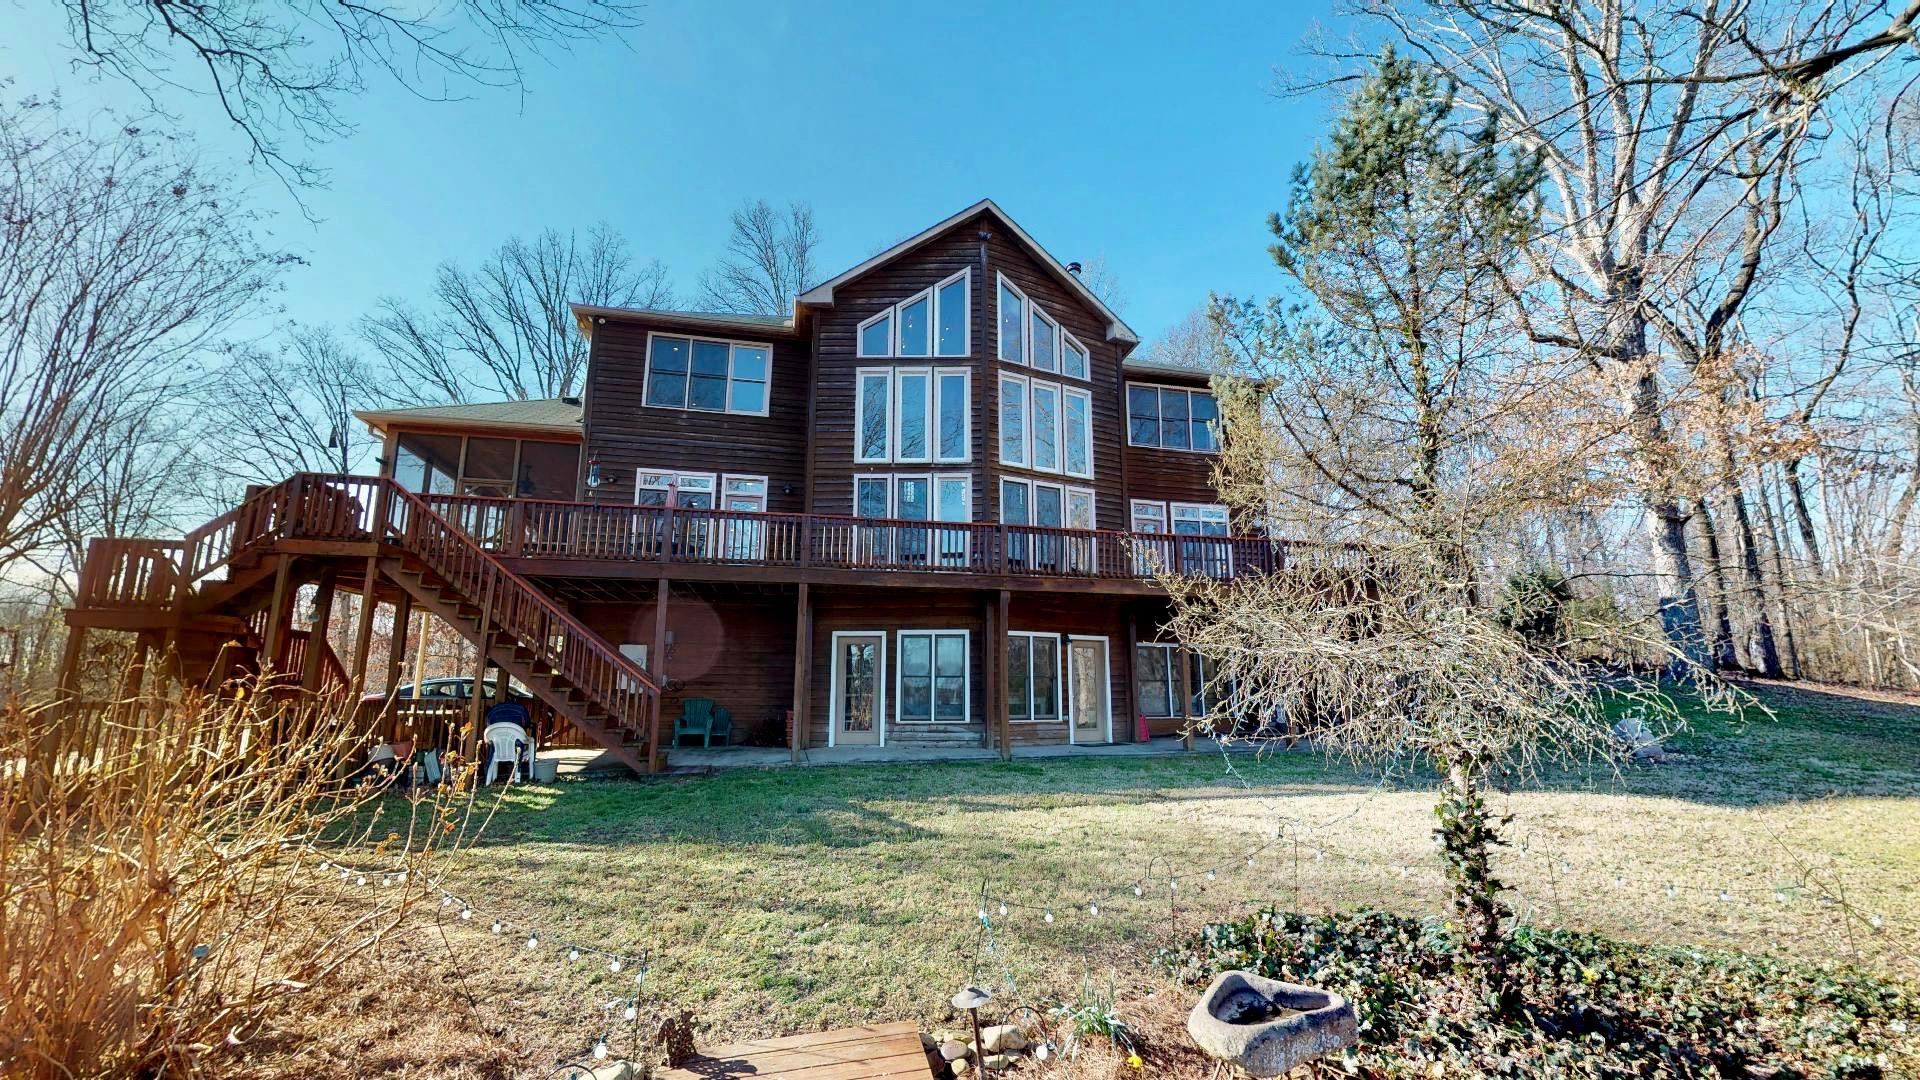 8548 Cub Creek Rd, Nashville, TN 37209 - Nashville, TN real estate listing